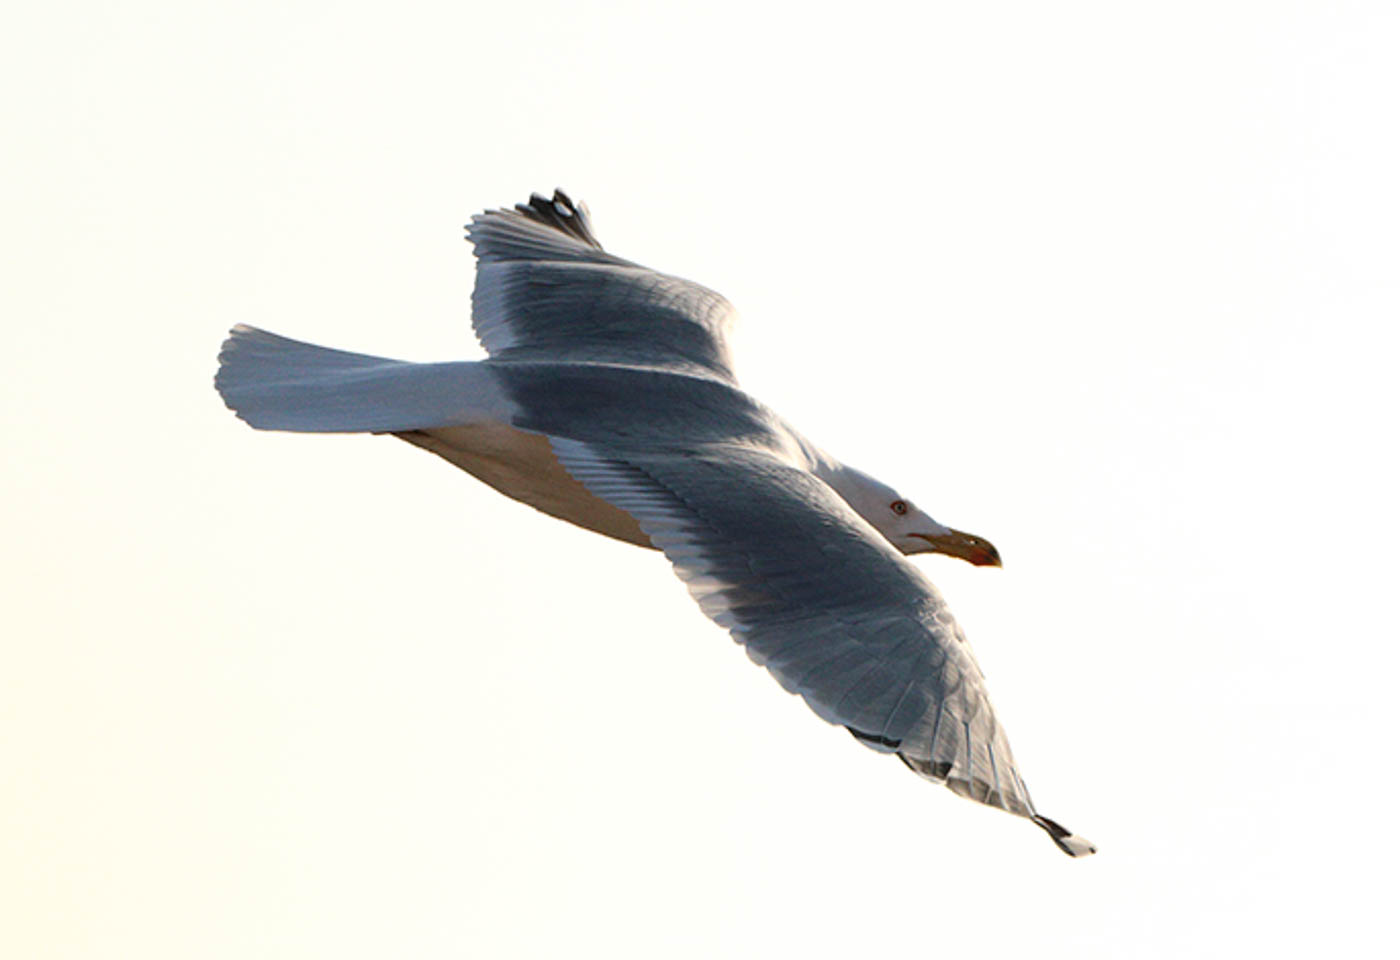 Flying seagull taken by Canon EOS 760D DSLR camera